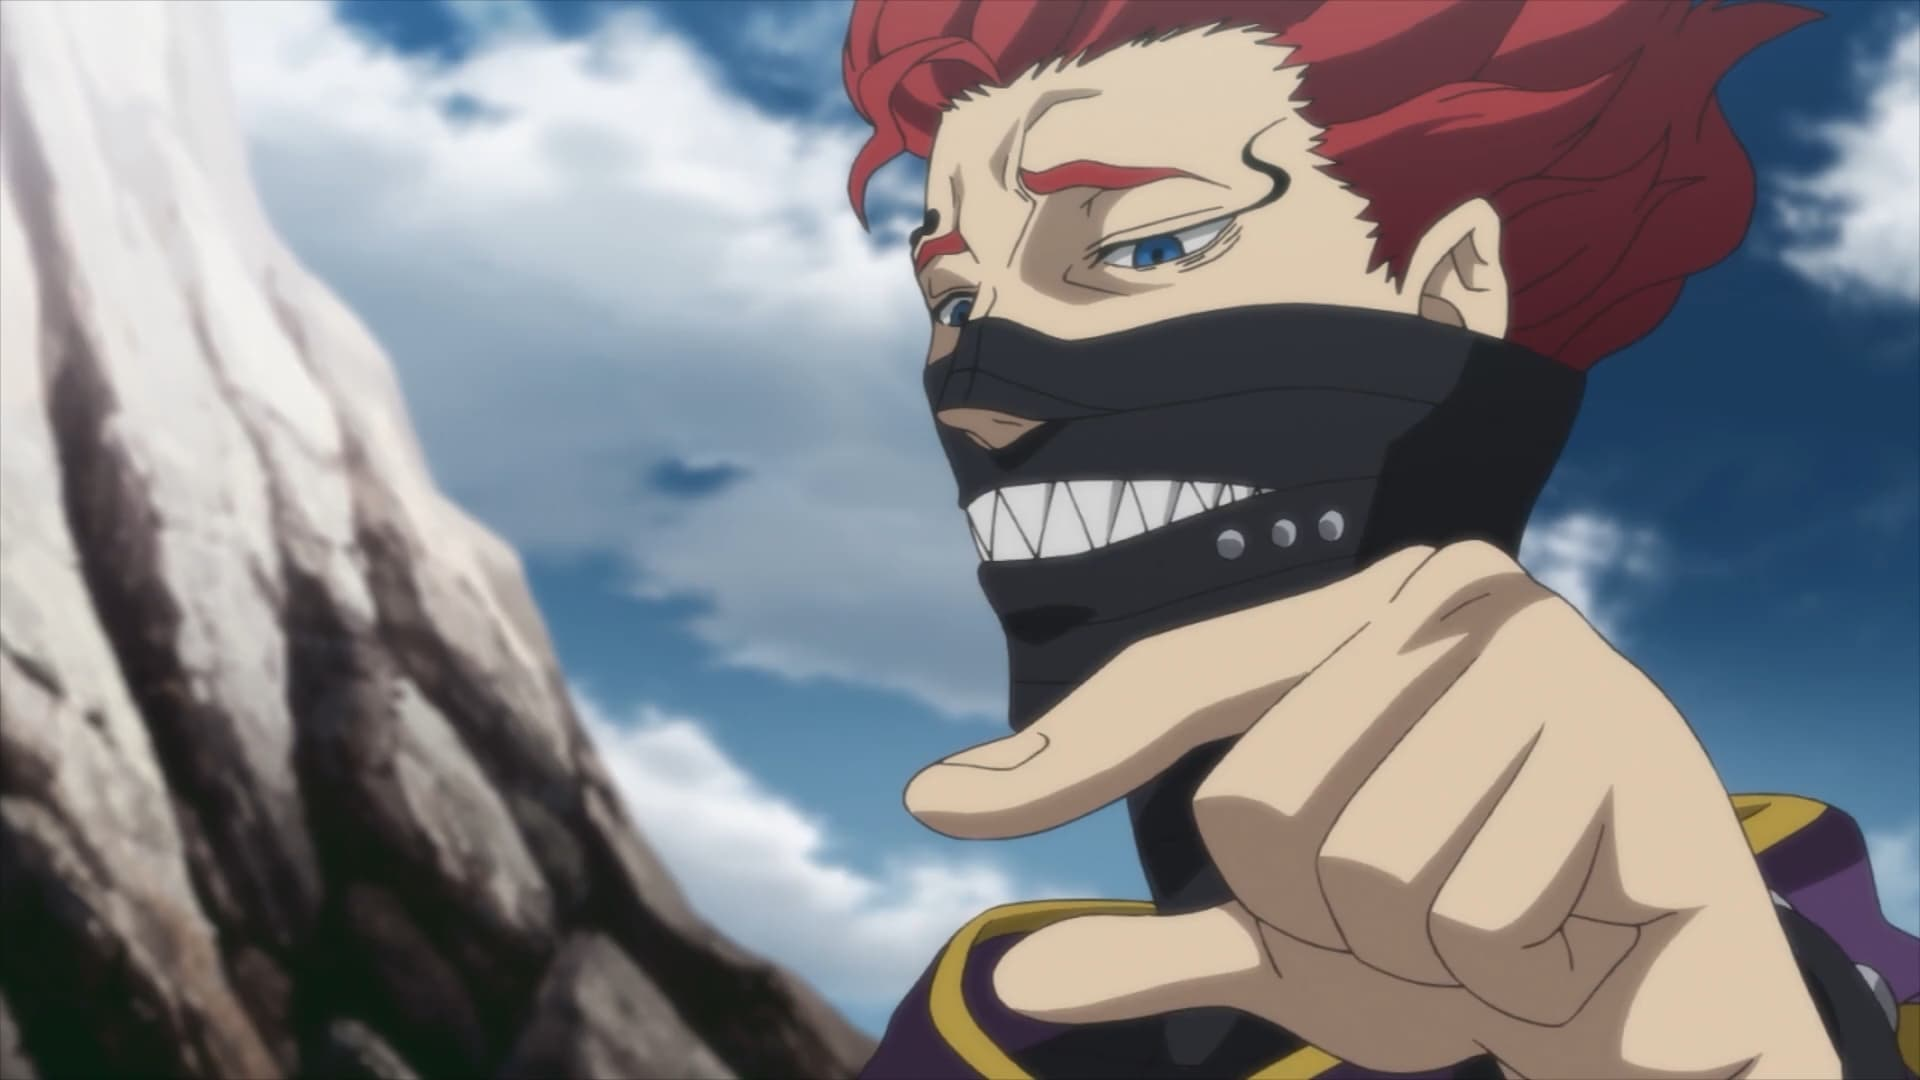 Black Clover - Season 1 Episode 79 : Mister Delinquent vs. Muscle Brains